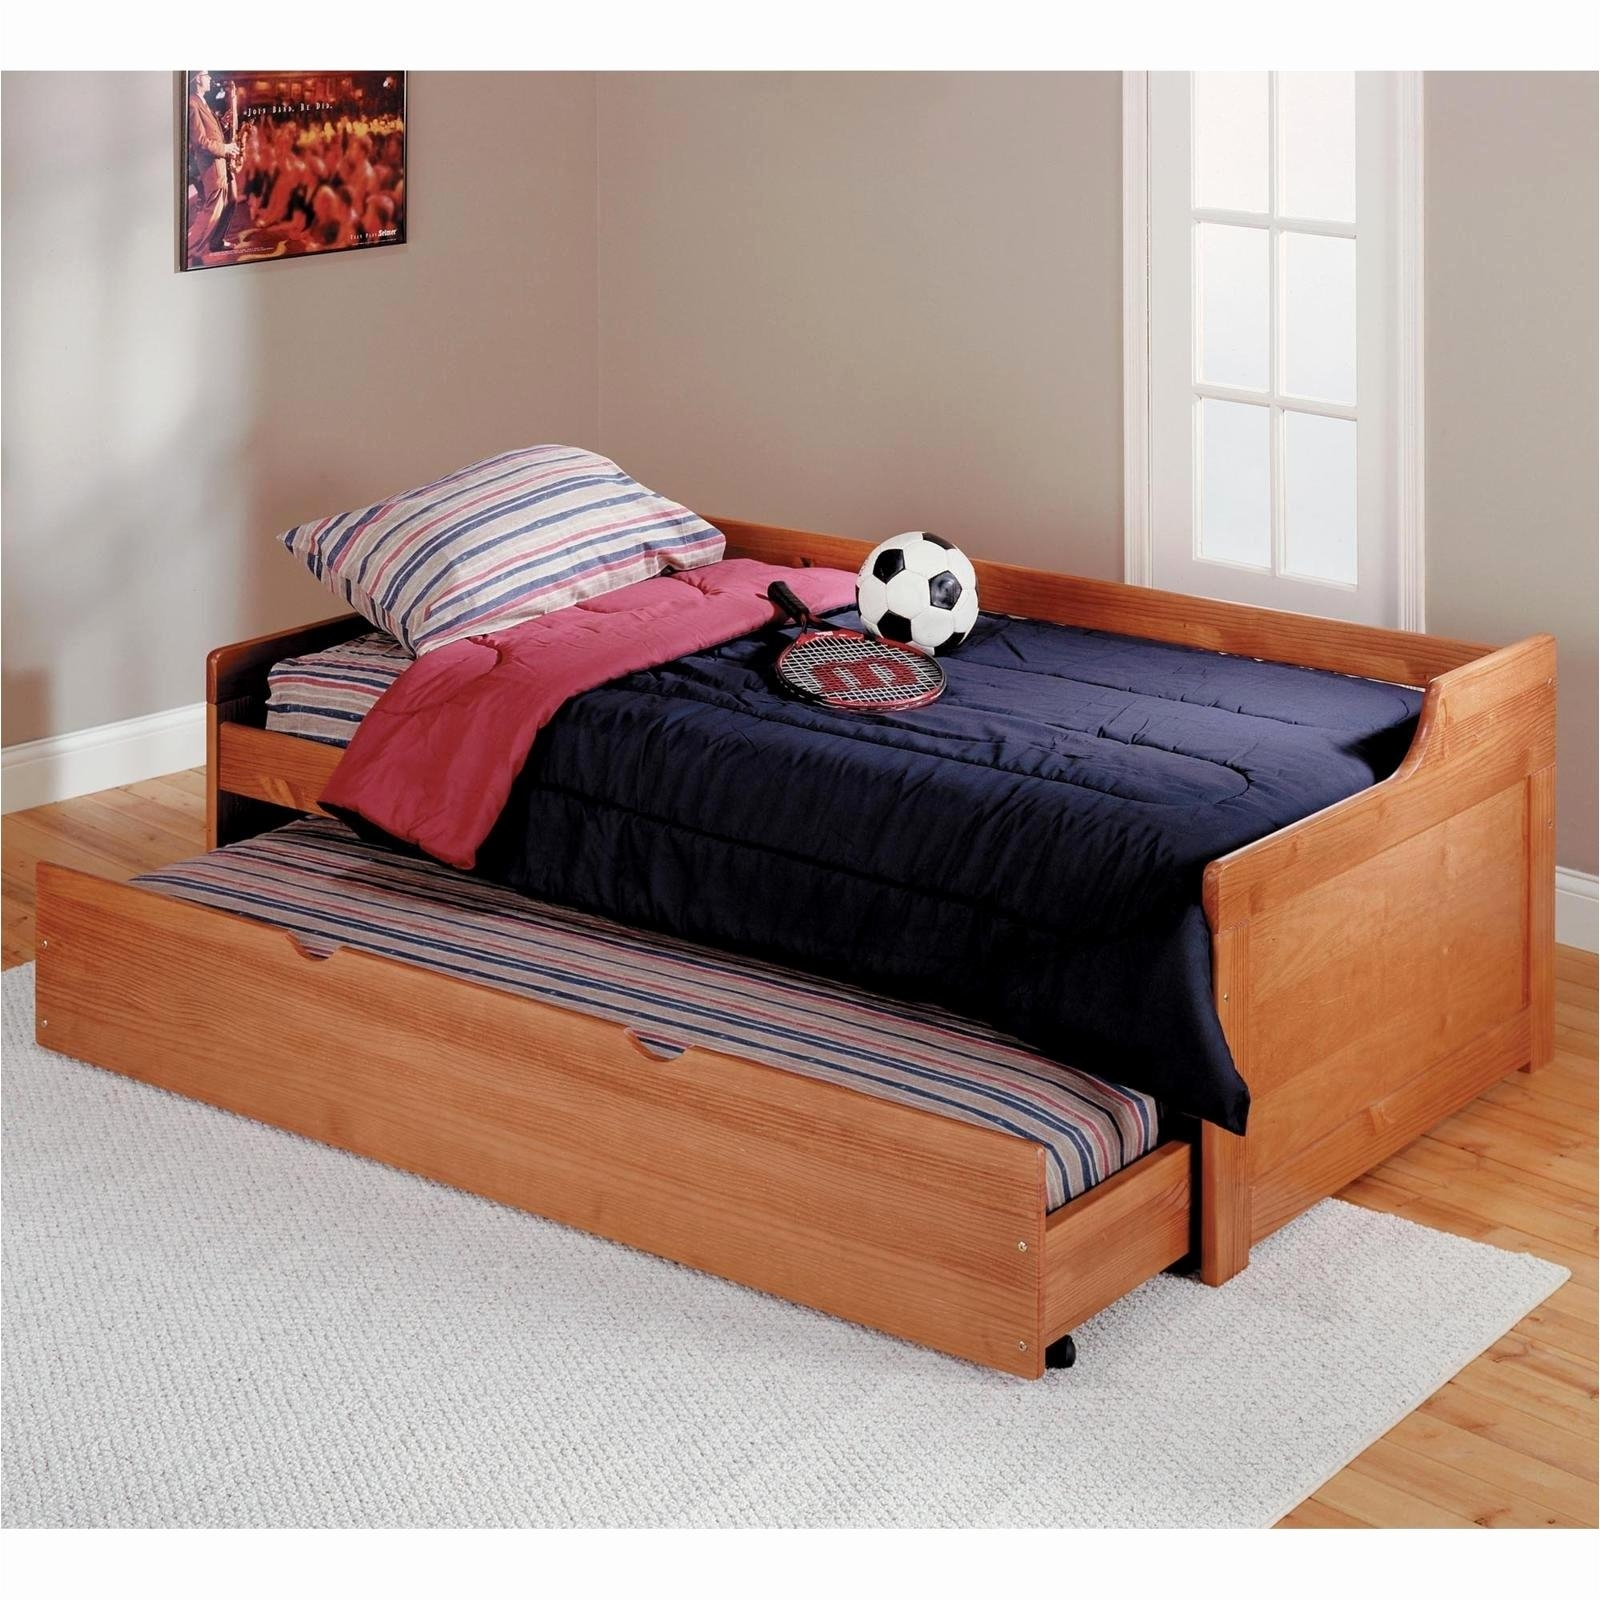 Fresh Sofa Trundle Bed | Sofa Bed Idea Within Sofa Beds With Trundle (Image 10 of 20)